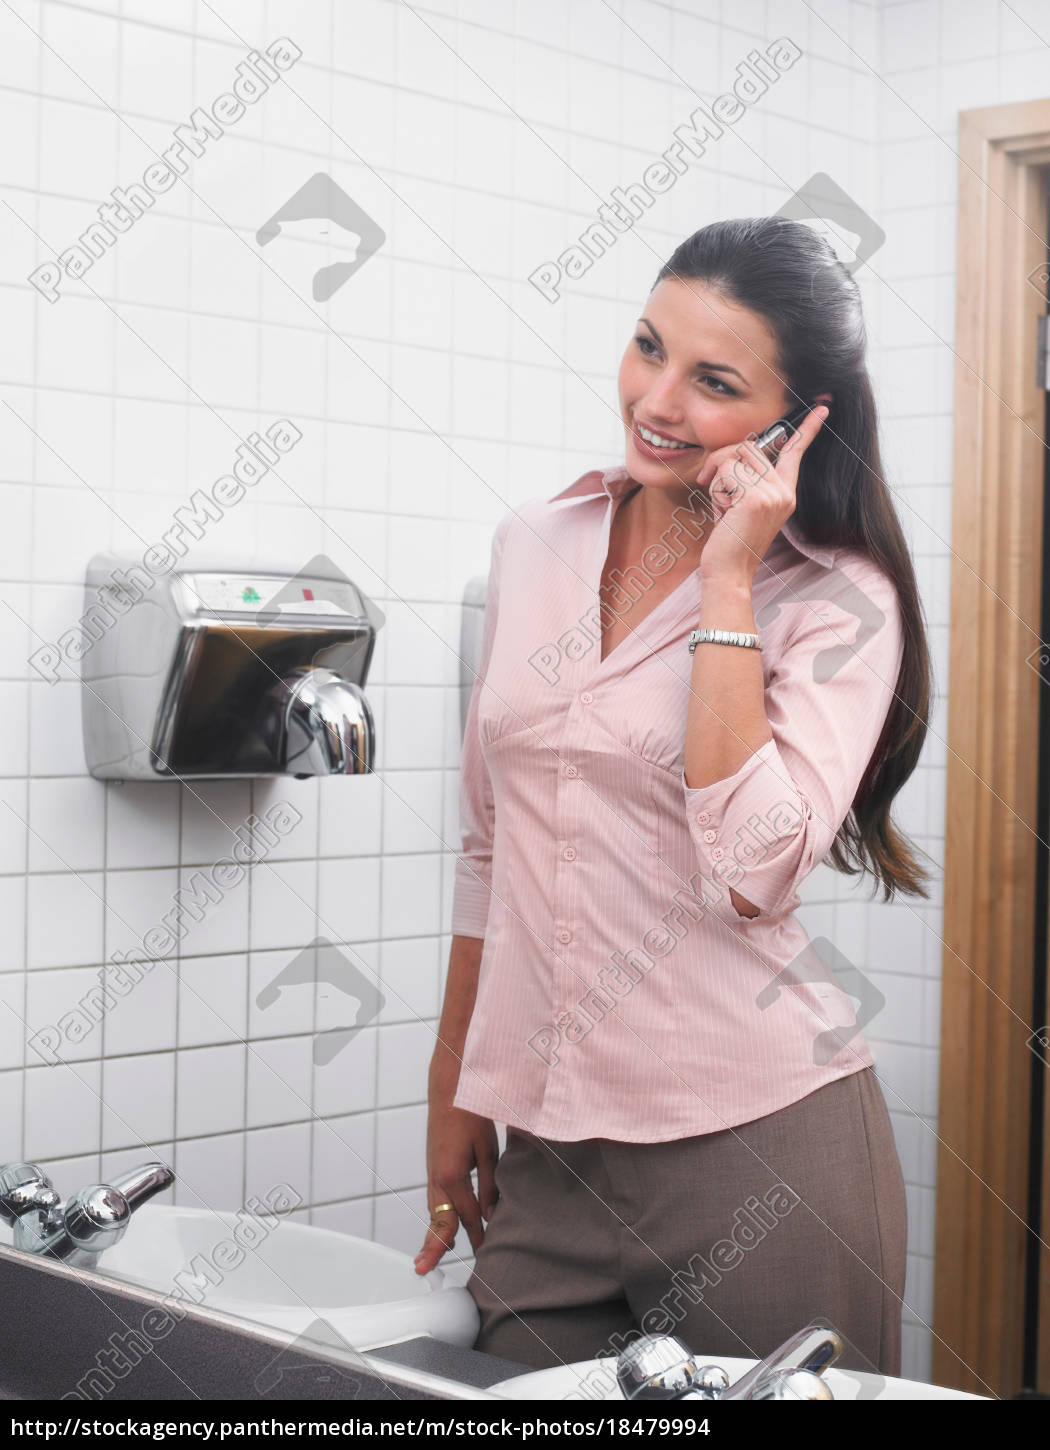 woman, reflected, in, office, washroom, mirror - 18479994